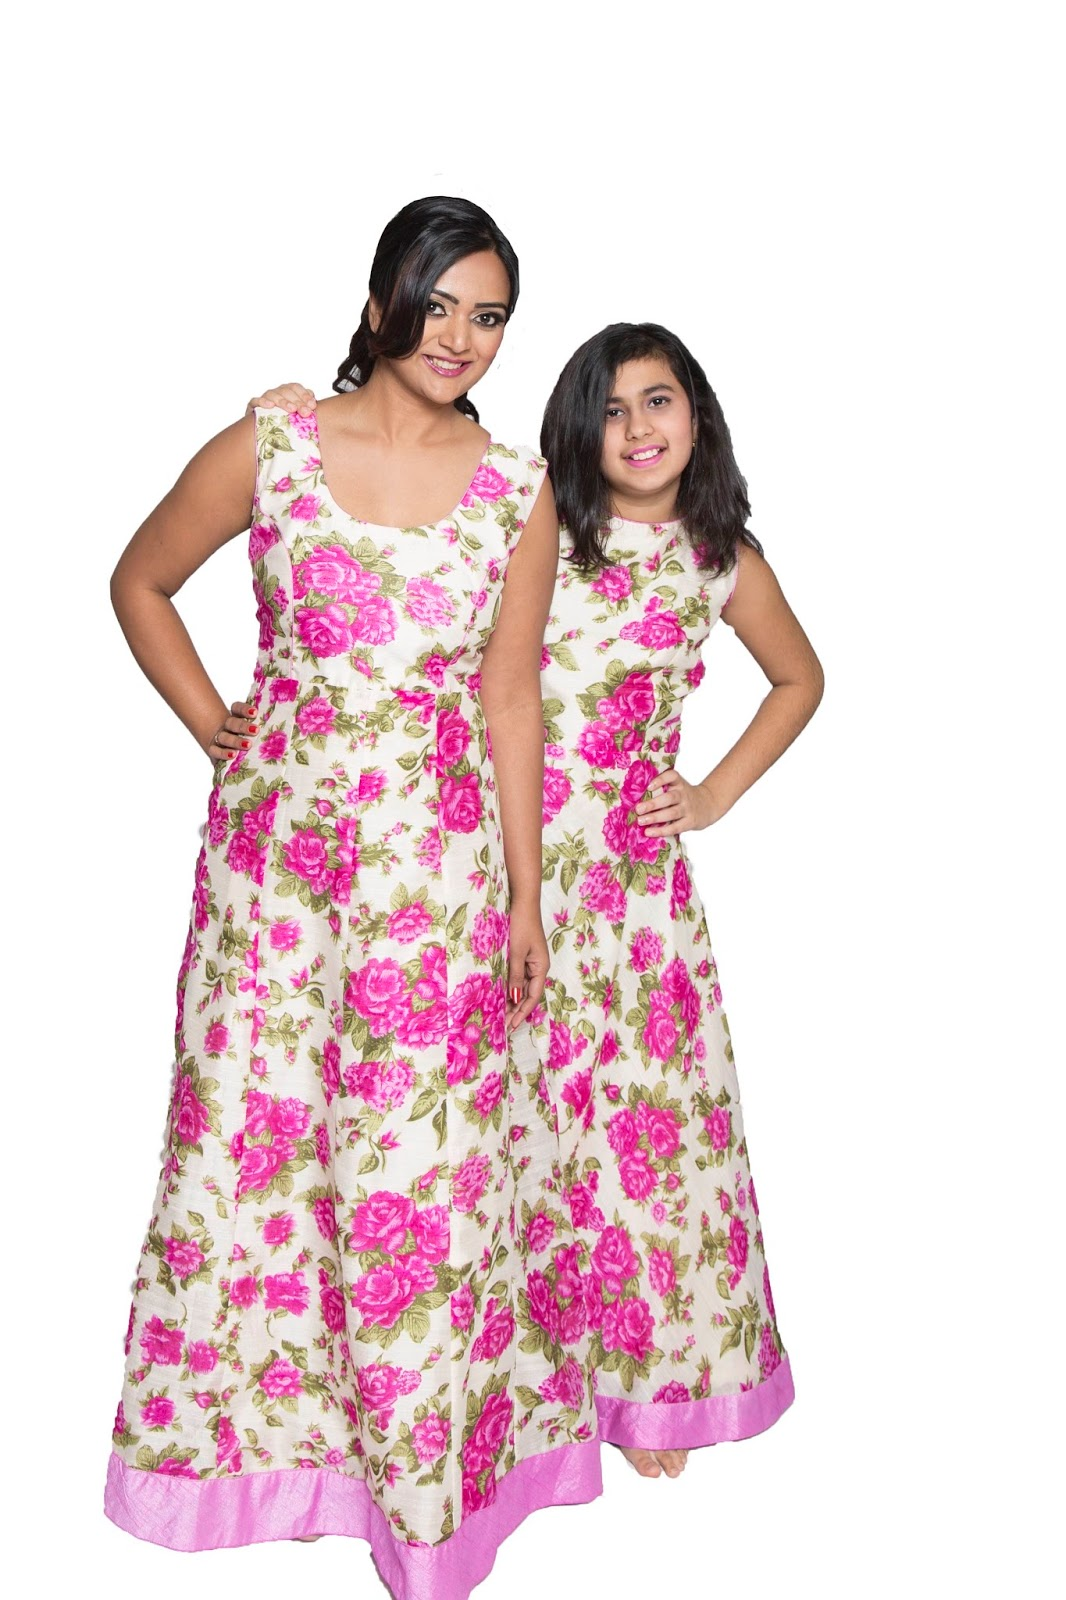 Floral Maxi Dress for Spring , floral dresses, similar dresses for sisters, two girls wearing same dresses, 2016 floral trend